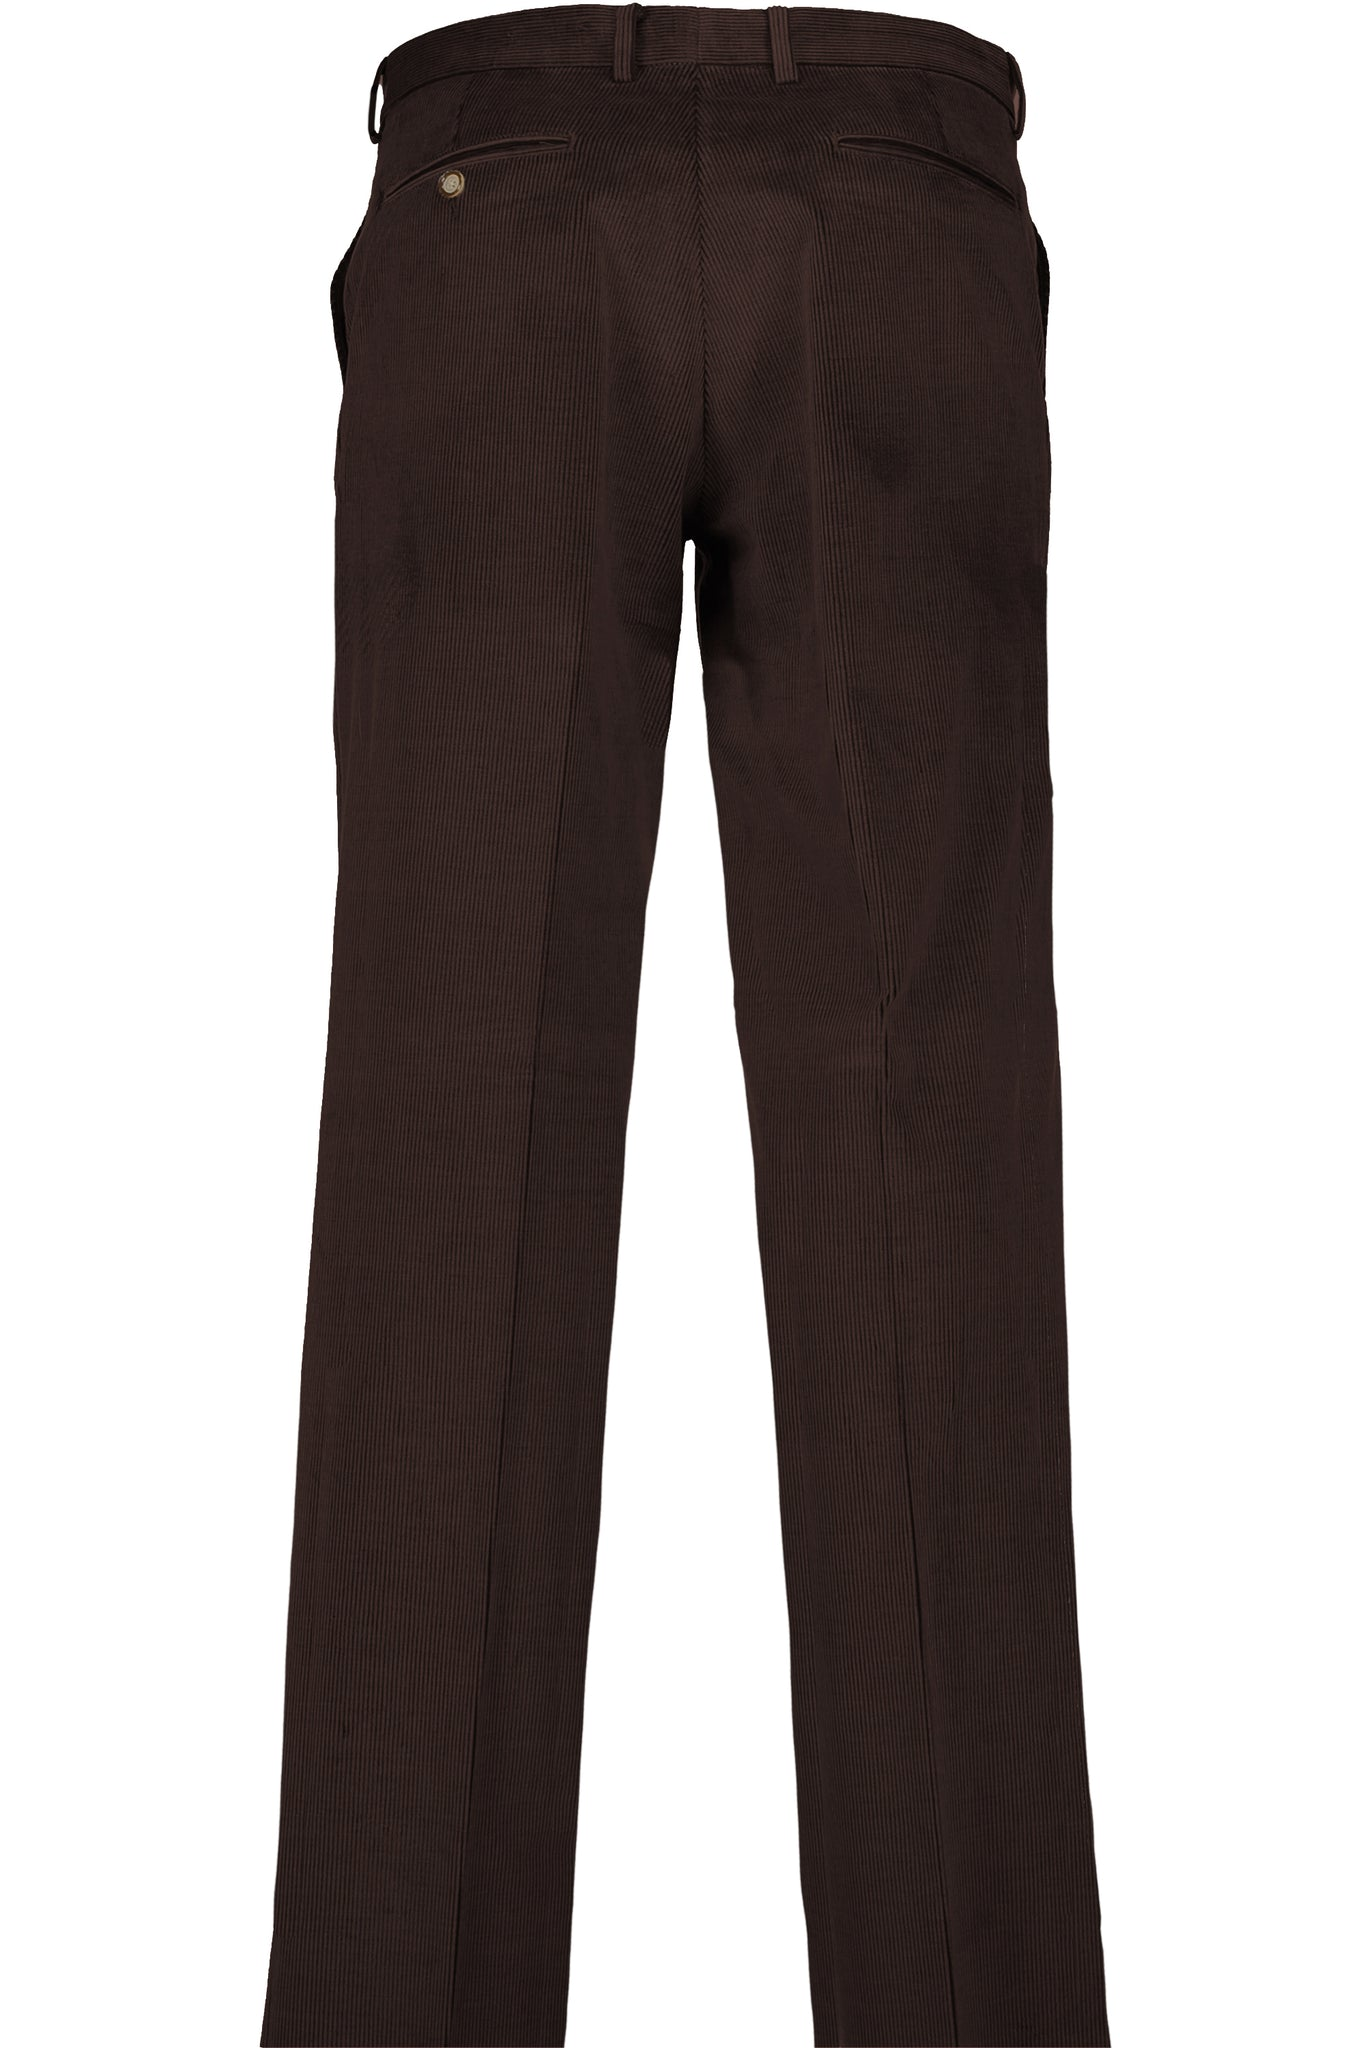 Modern Fit Brown Medium Wale Corduroy Flat Front Dress Pant